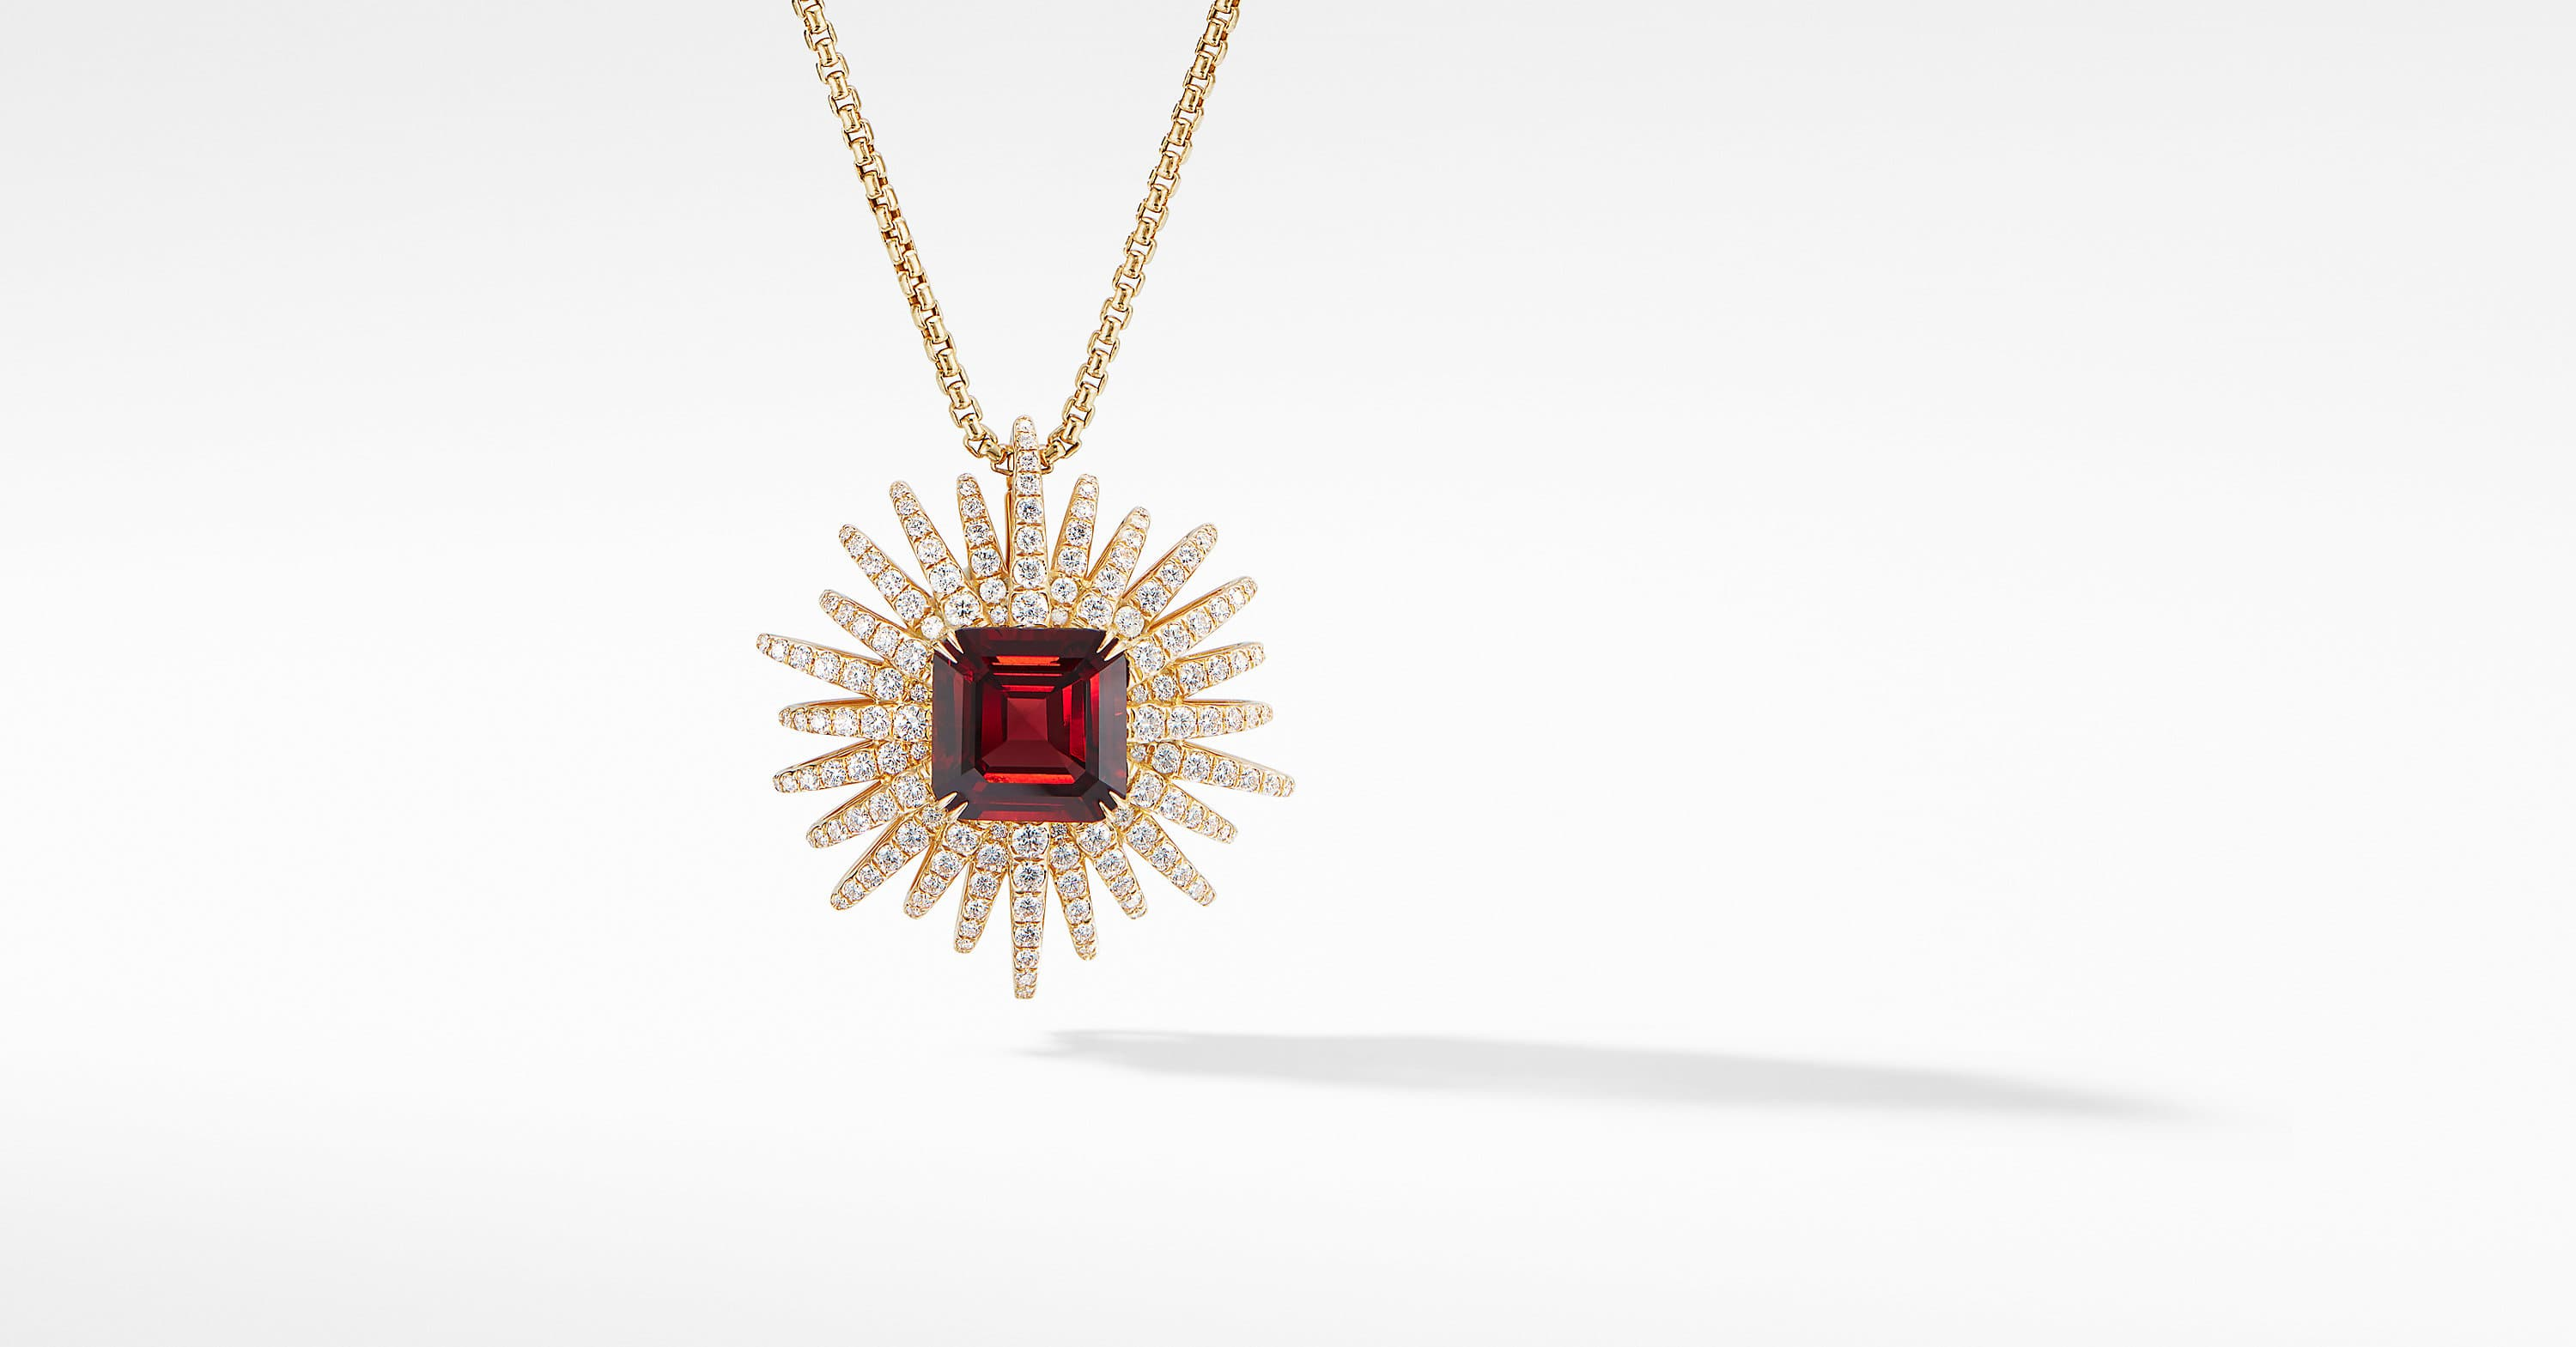 Starburst Pendant Necklace in 18K Yellow Gold with Diamonds